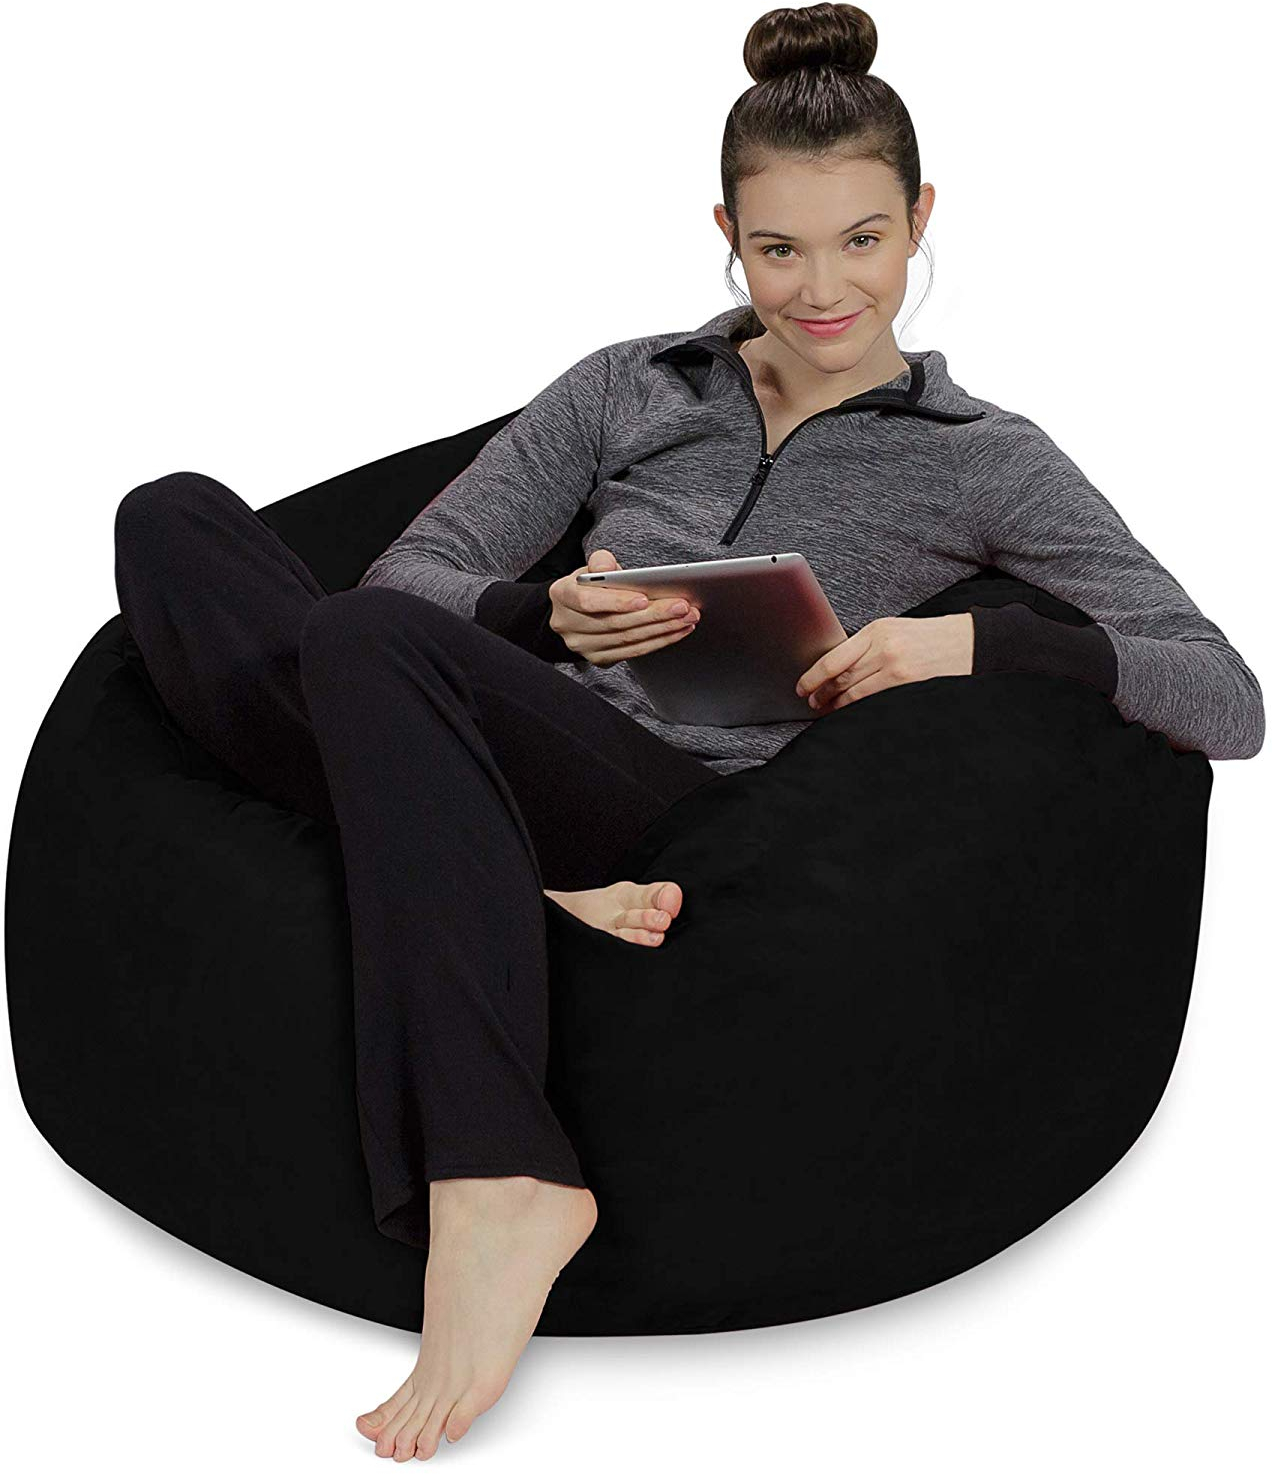 Stupendous Details About Sofa Sack Plush Ultra Soft Bean Bag Chair Memory Foam Bean Bag Chair With Dailytribune Chair Design For Home Dailytribuneorg